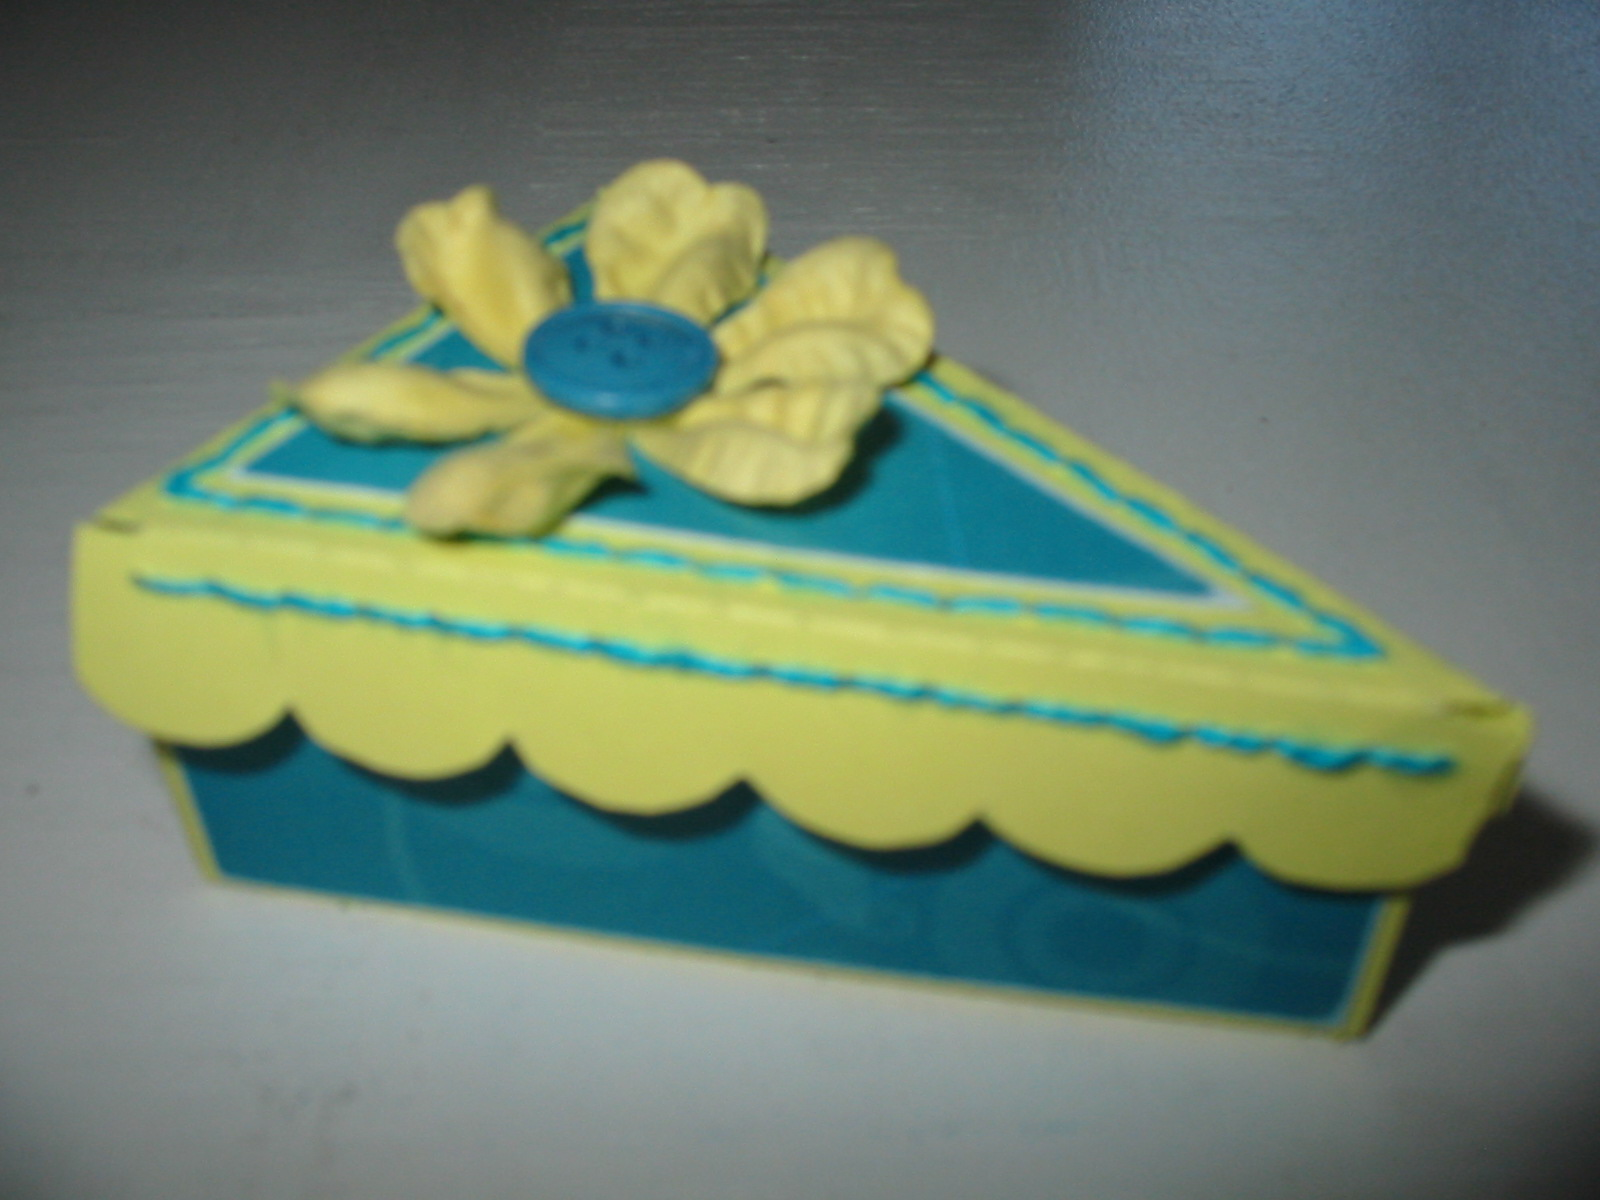 Scrap part de gateau